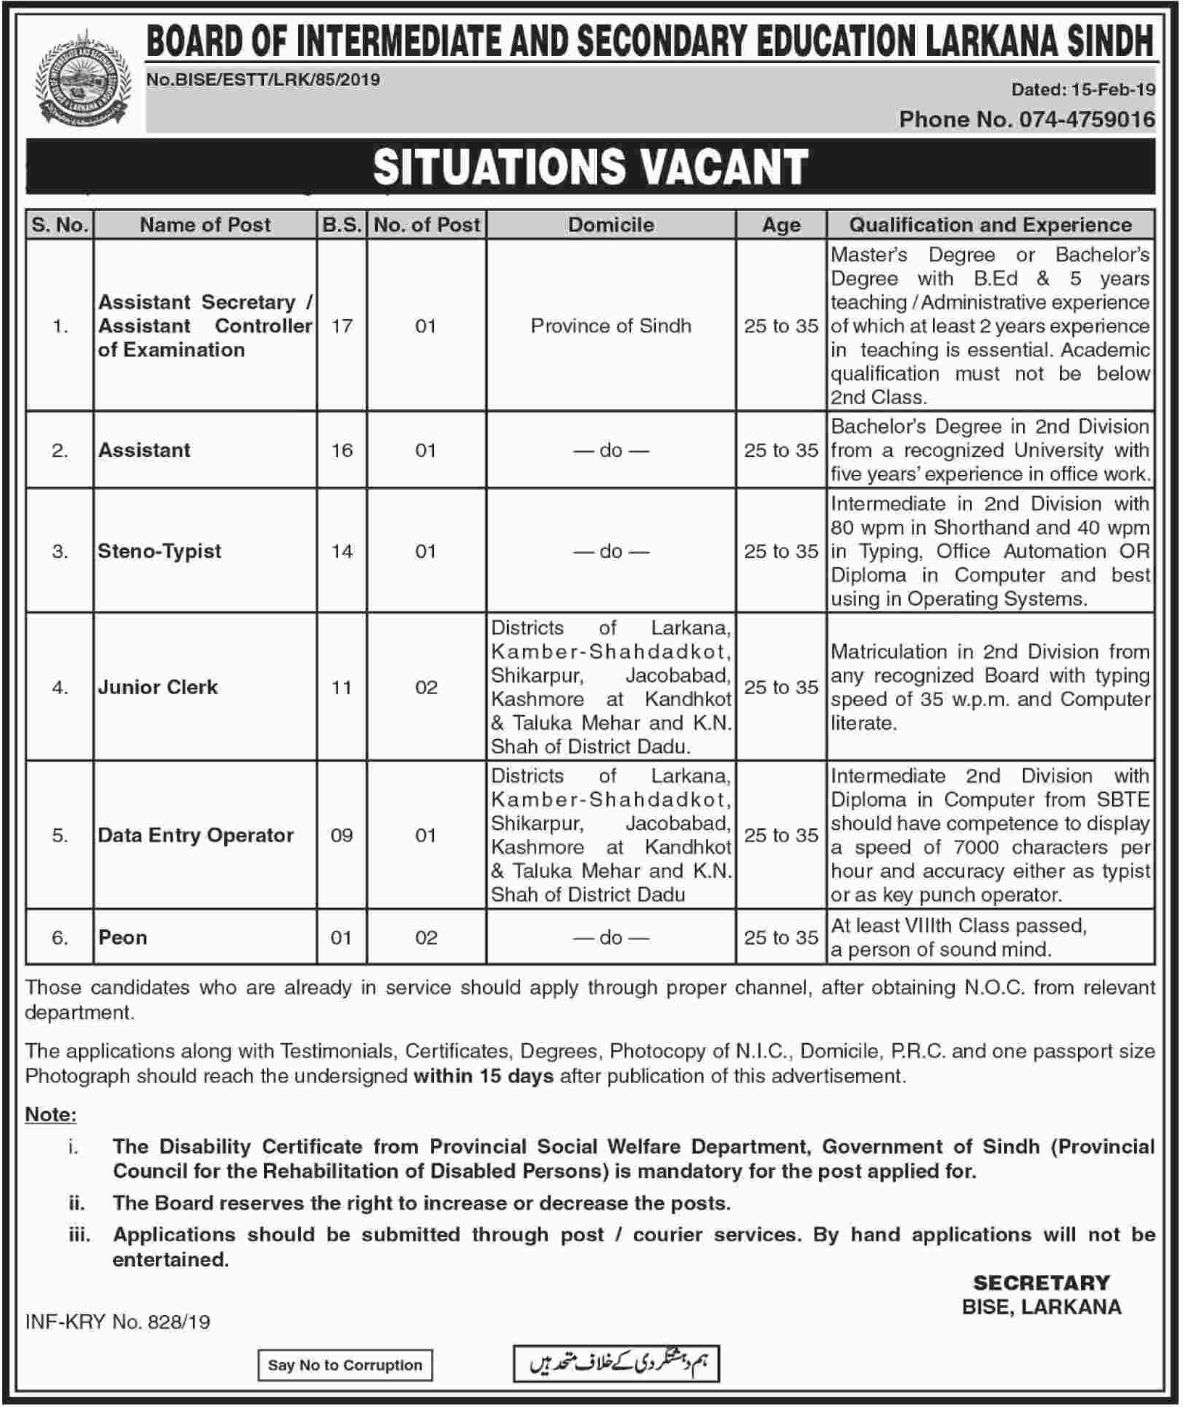 BISE Larkana Sindh Jobs 2019 Board of Intermediate & Secondary Education Latest